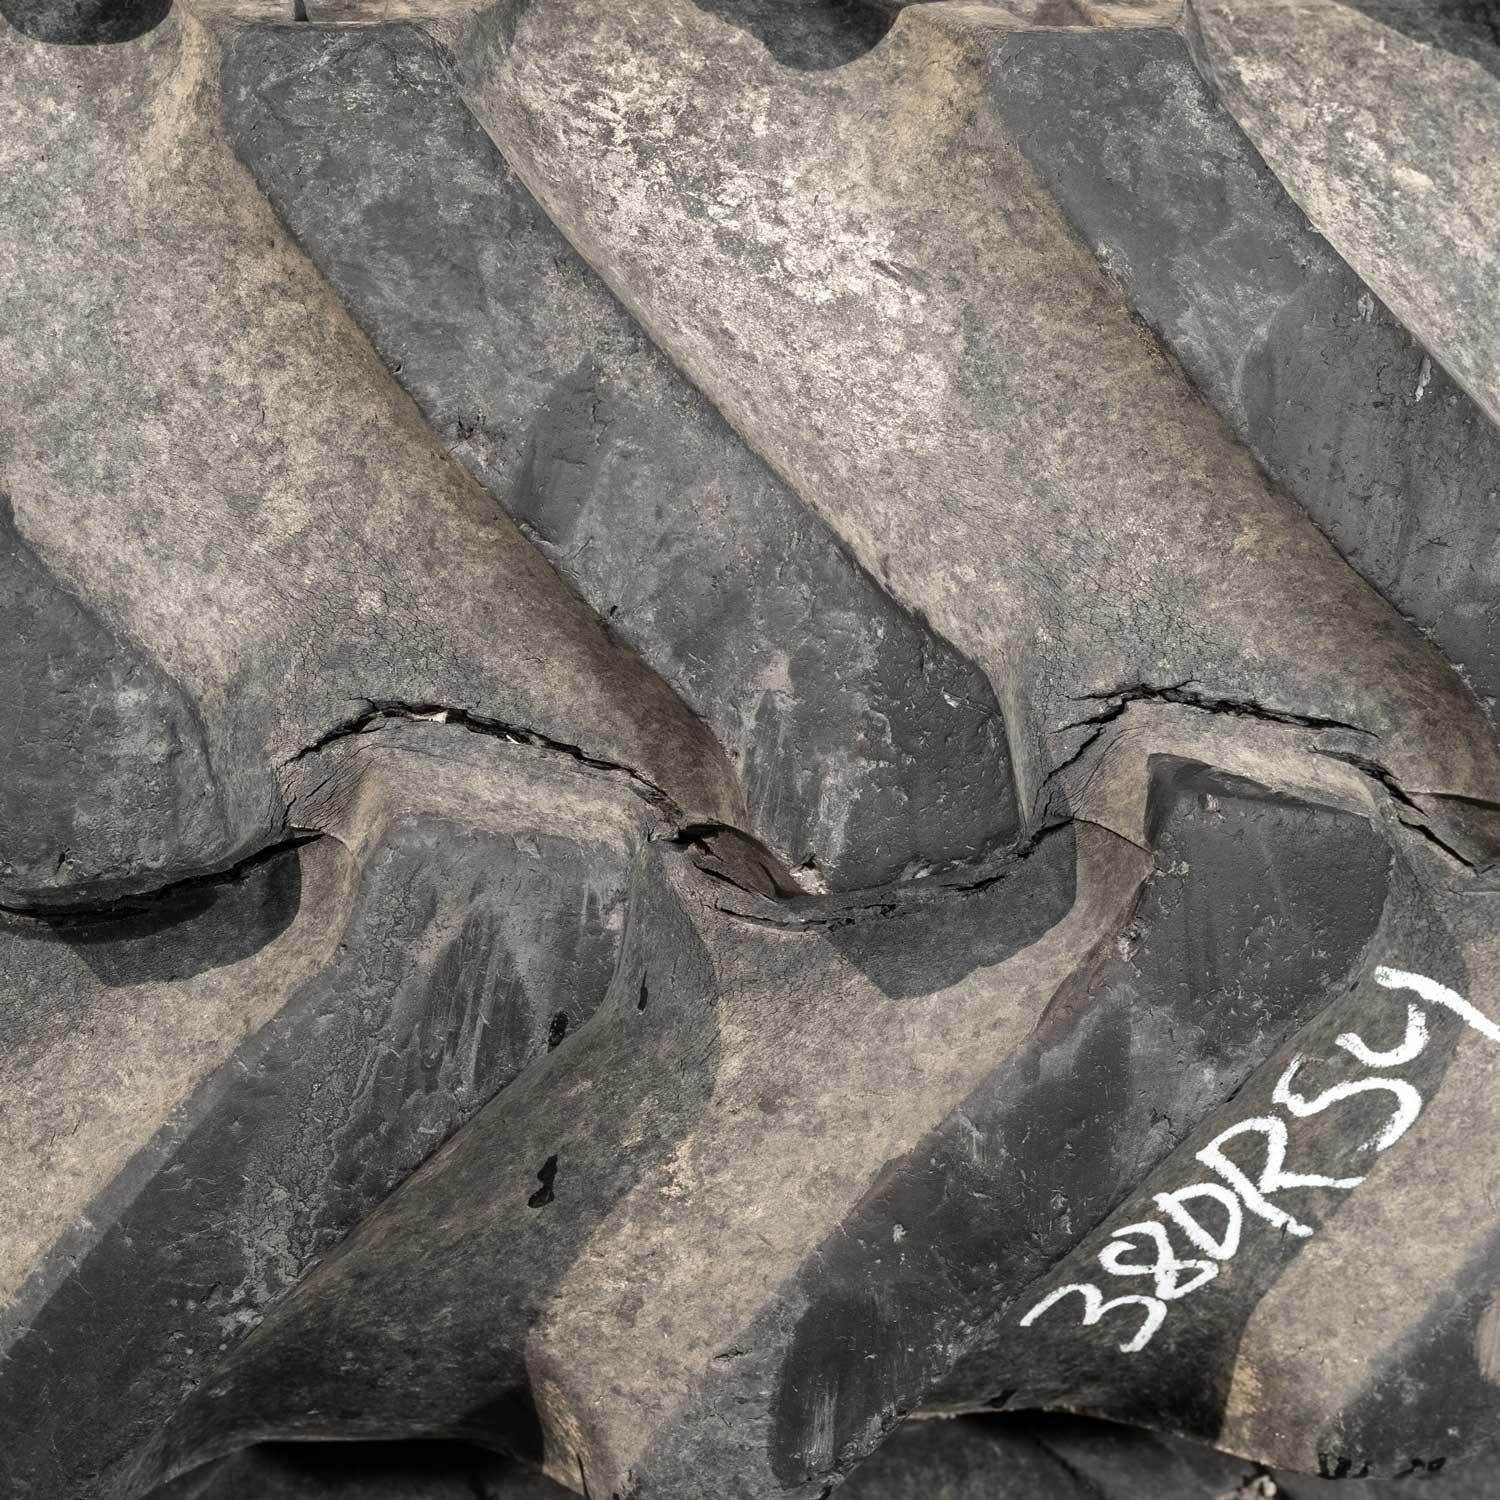 tractor tire with severe weathering